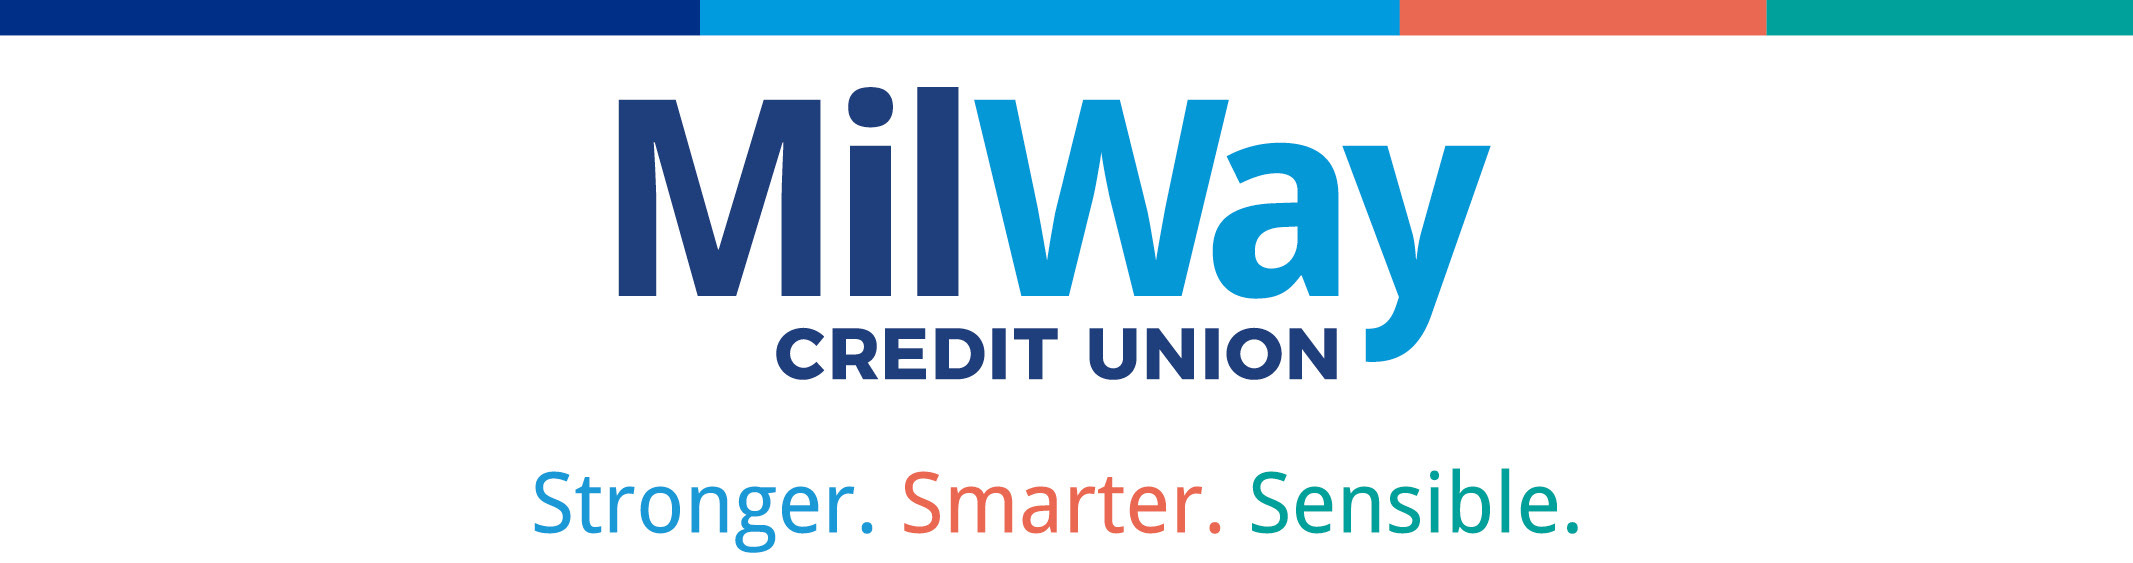 MilWay logo with tagline that says Smarter. Stronger. Sensible.